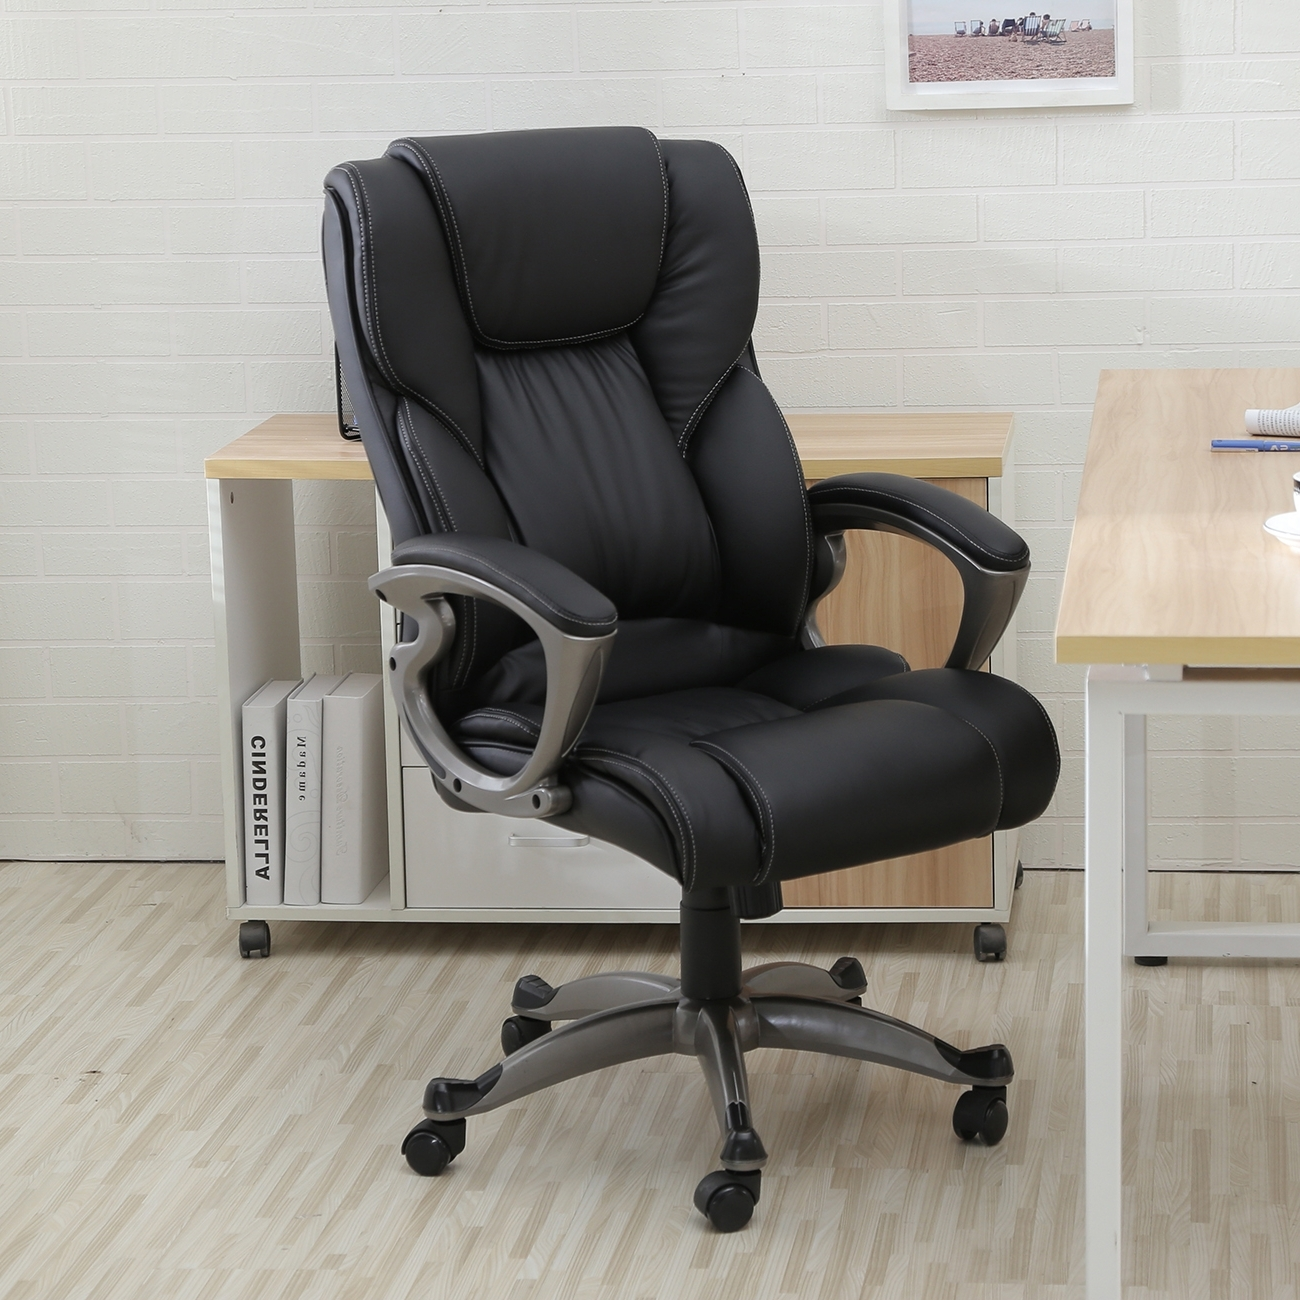 Recent How To Choose An Ergonomic Office Chair – Theydesign Regarding Ergonomic Executive Office Chairs (View 19 of 20)